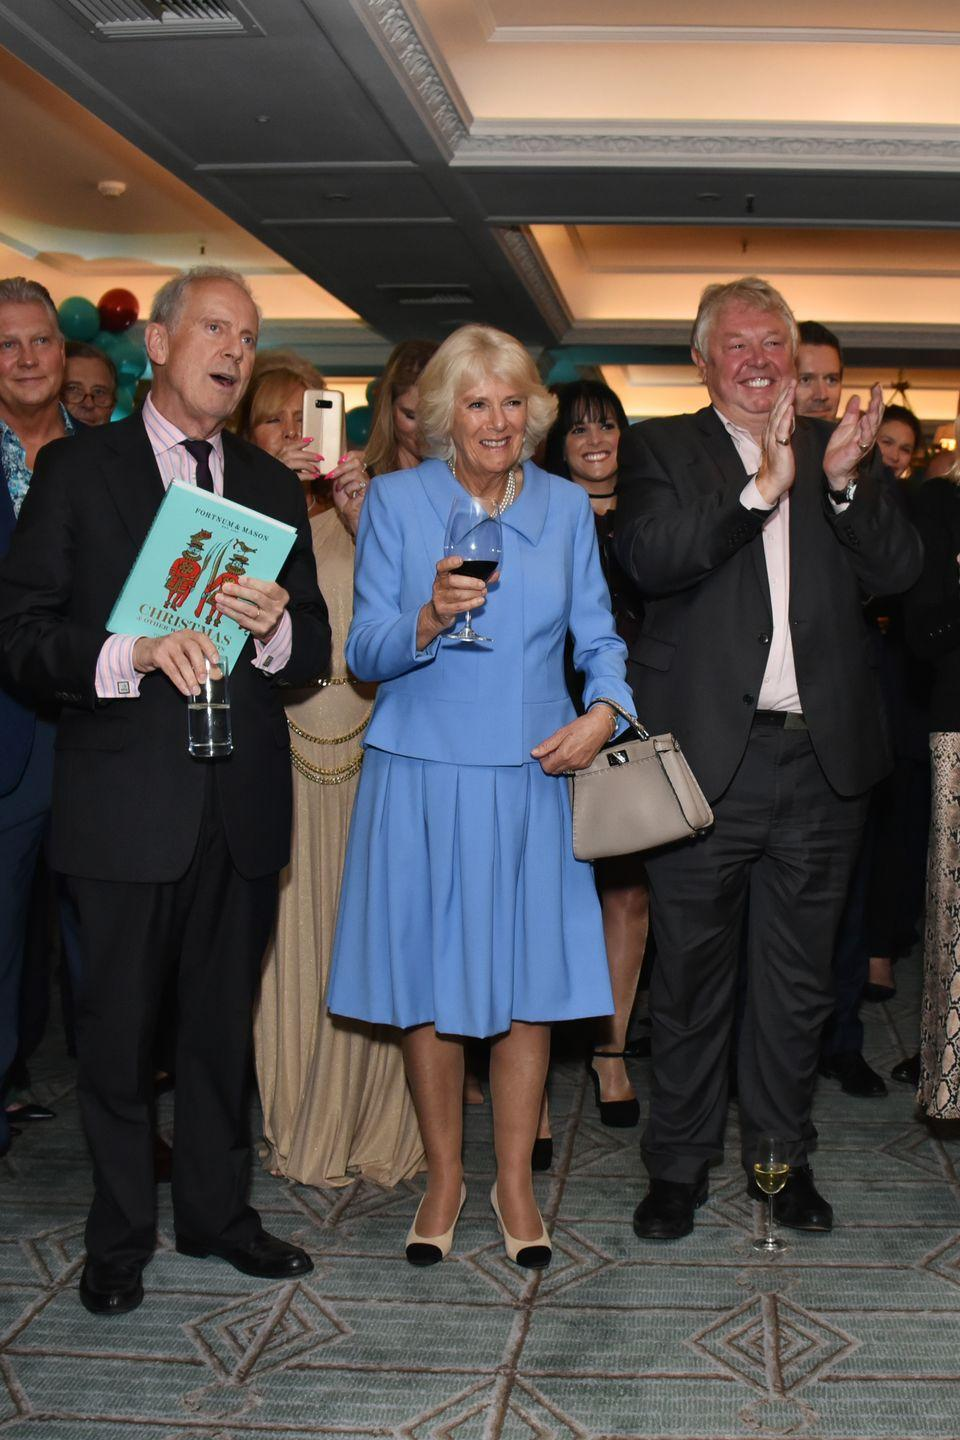 """<p>Camilla Parker Bowles recycled a look from earlier this year while attending the launch of the <em>Fortnum & Mason Christmas & Other Winter Feasts </em>cookbook which was written by her son, <a href=""""https://www.townandcountrymag.com/society/tradition/a17008420/camilla-parker-bowles-children/"""" rel=""""nofollow noopener"""" target=""""_blank"""" data-ylk=""""slk:Tom Parker Bowles"""" class=""""link rapid-noclick-resp"""">Tom Parker Bowles</a>.</p>"""